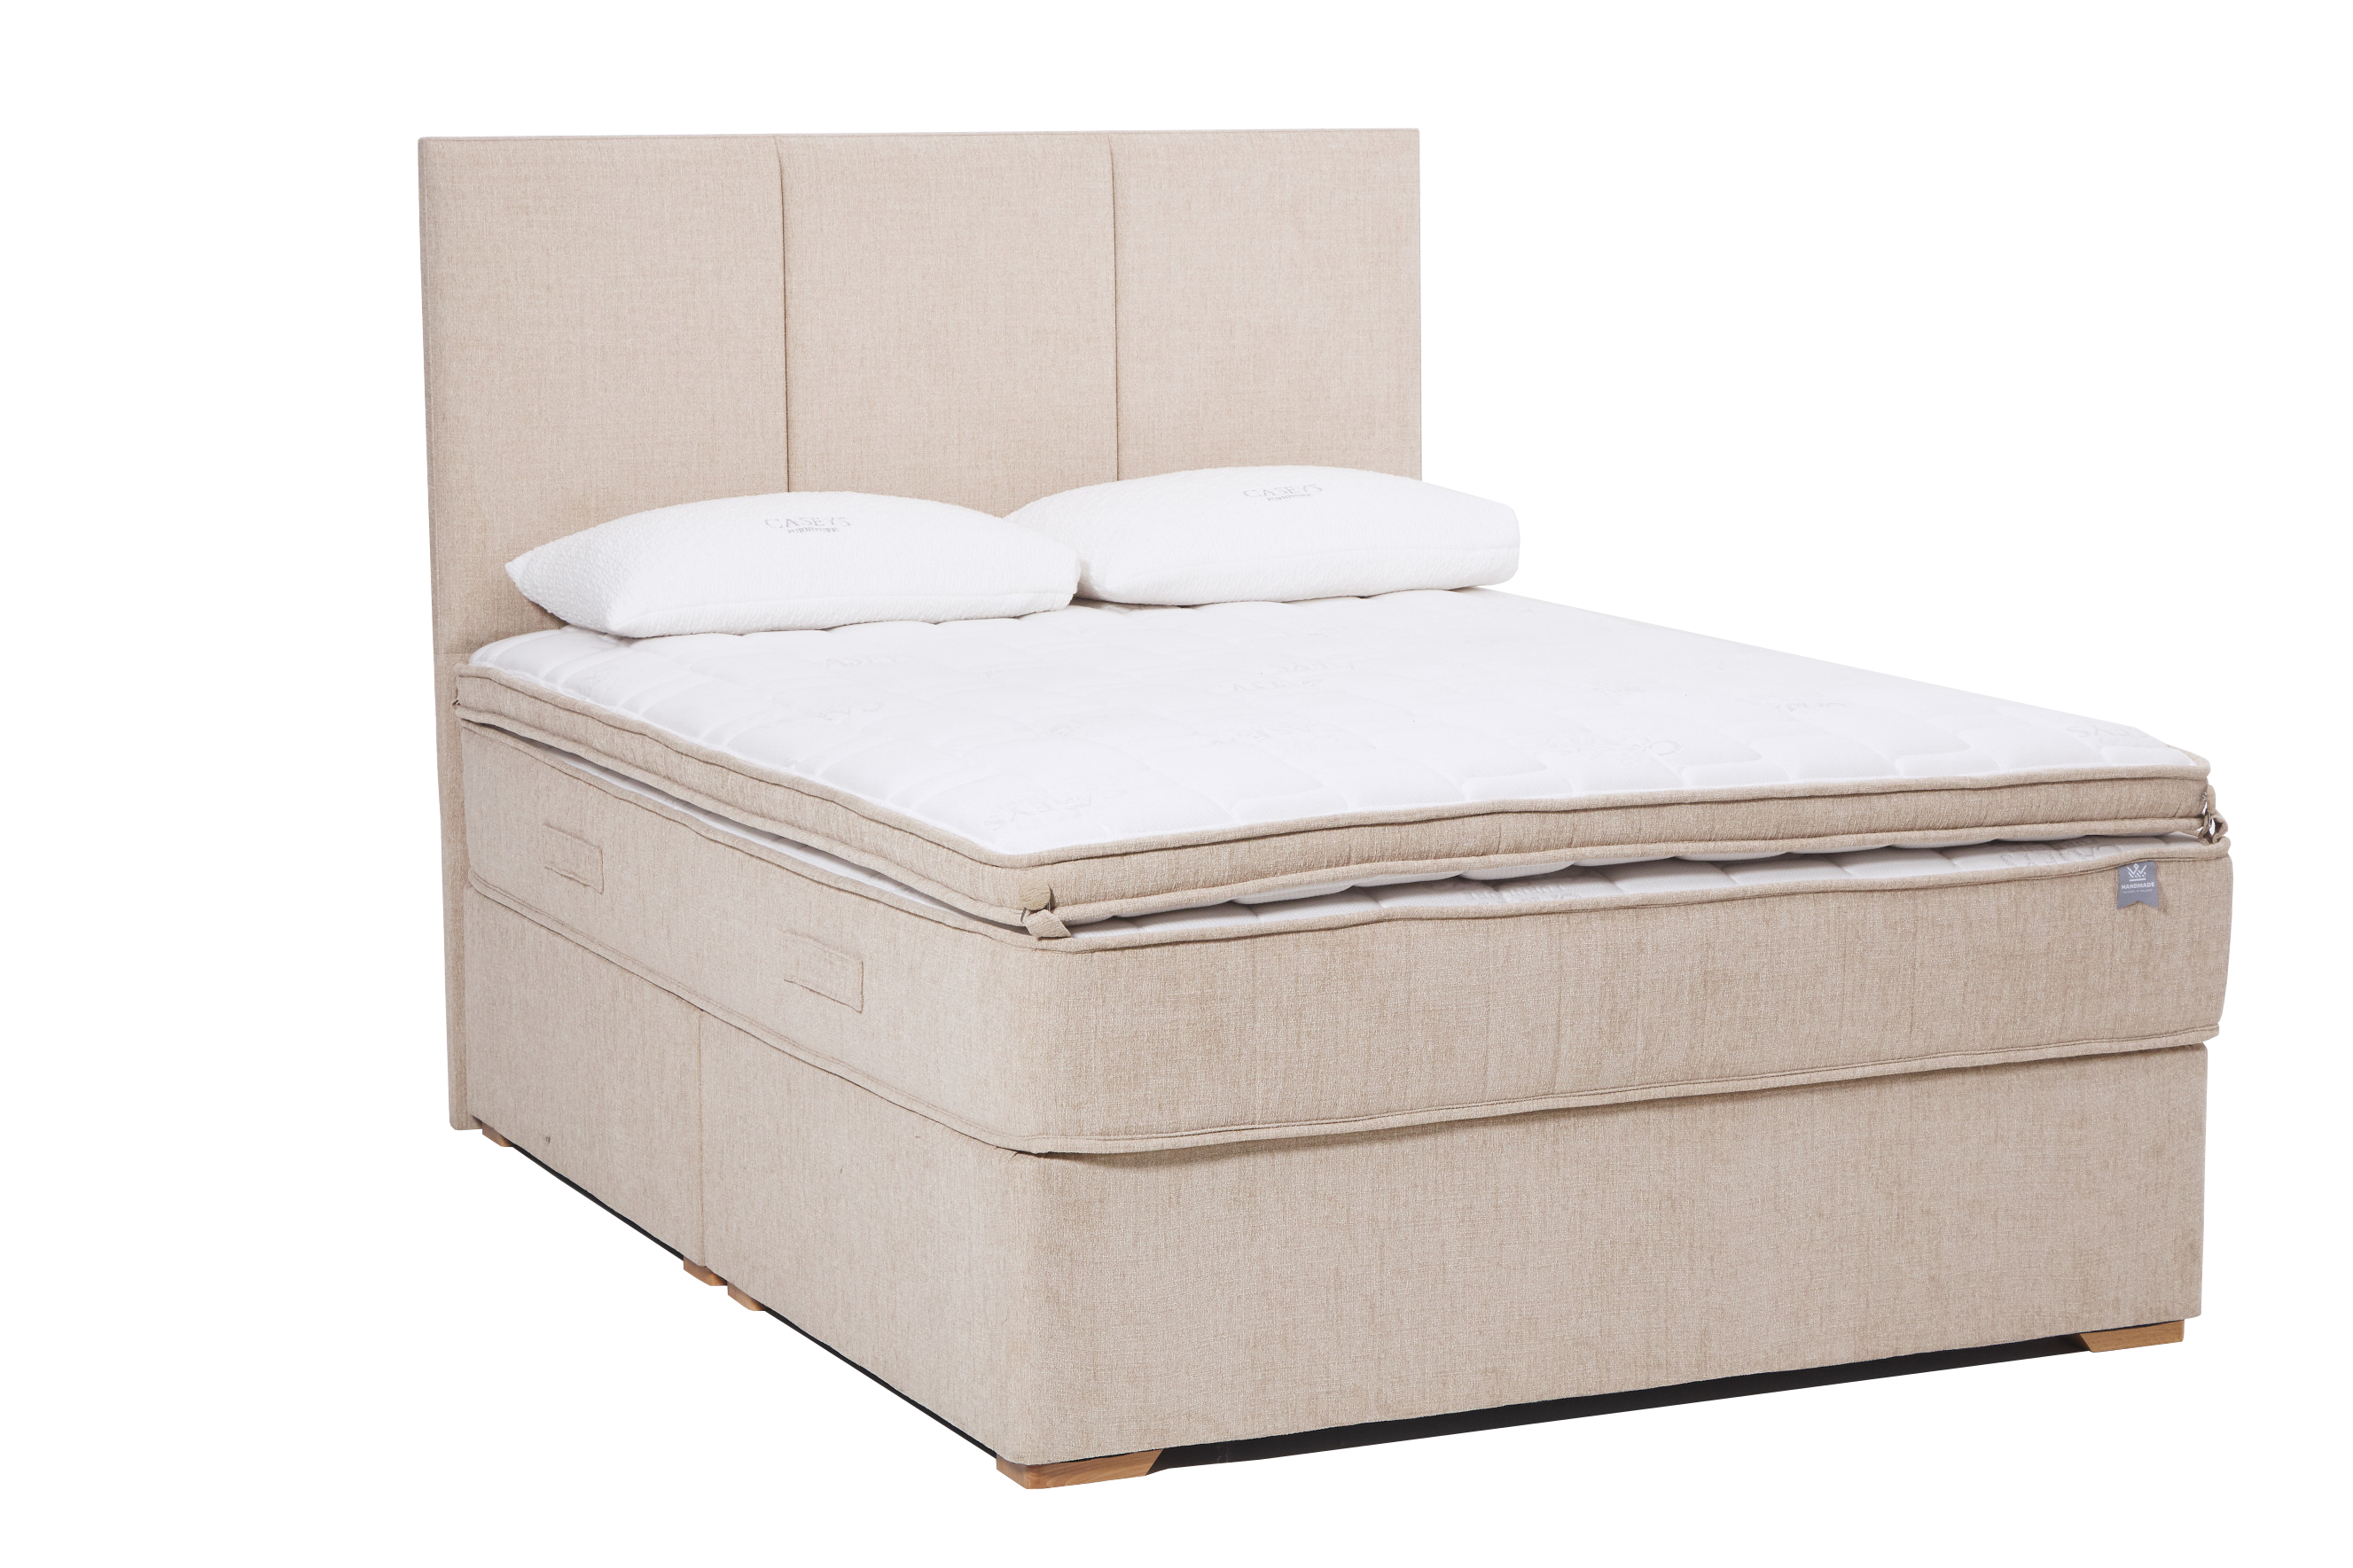 King Koil Caseys Superior Support Plus 4.6ft Mattress and 2 Drawer Divan